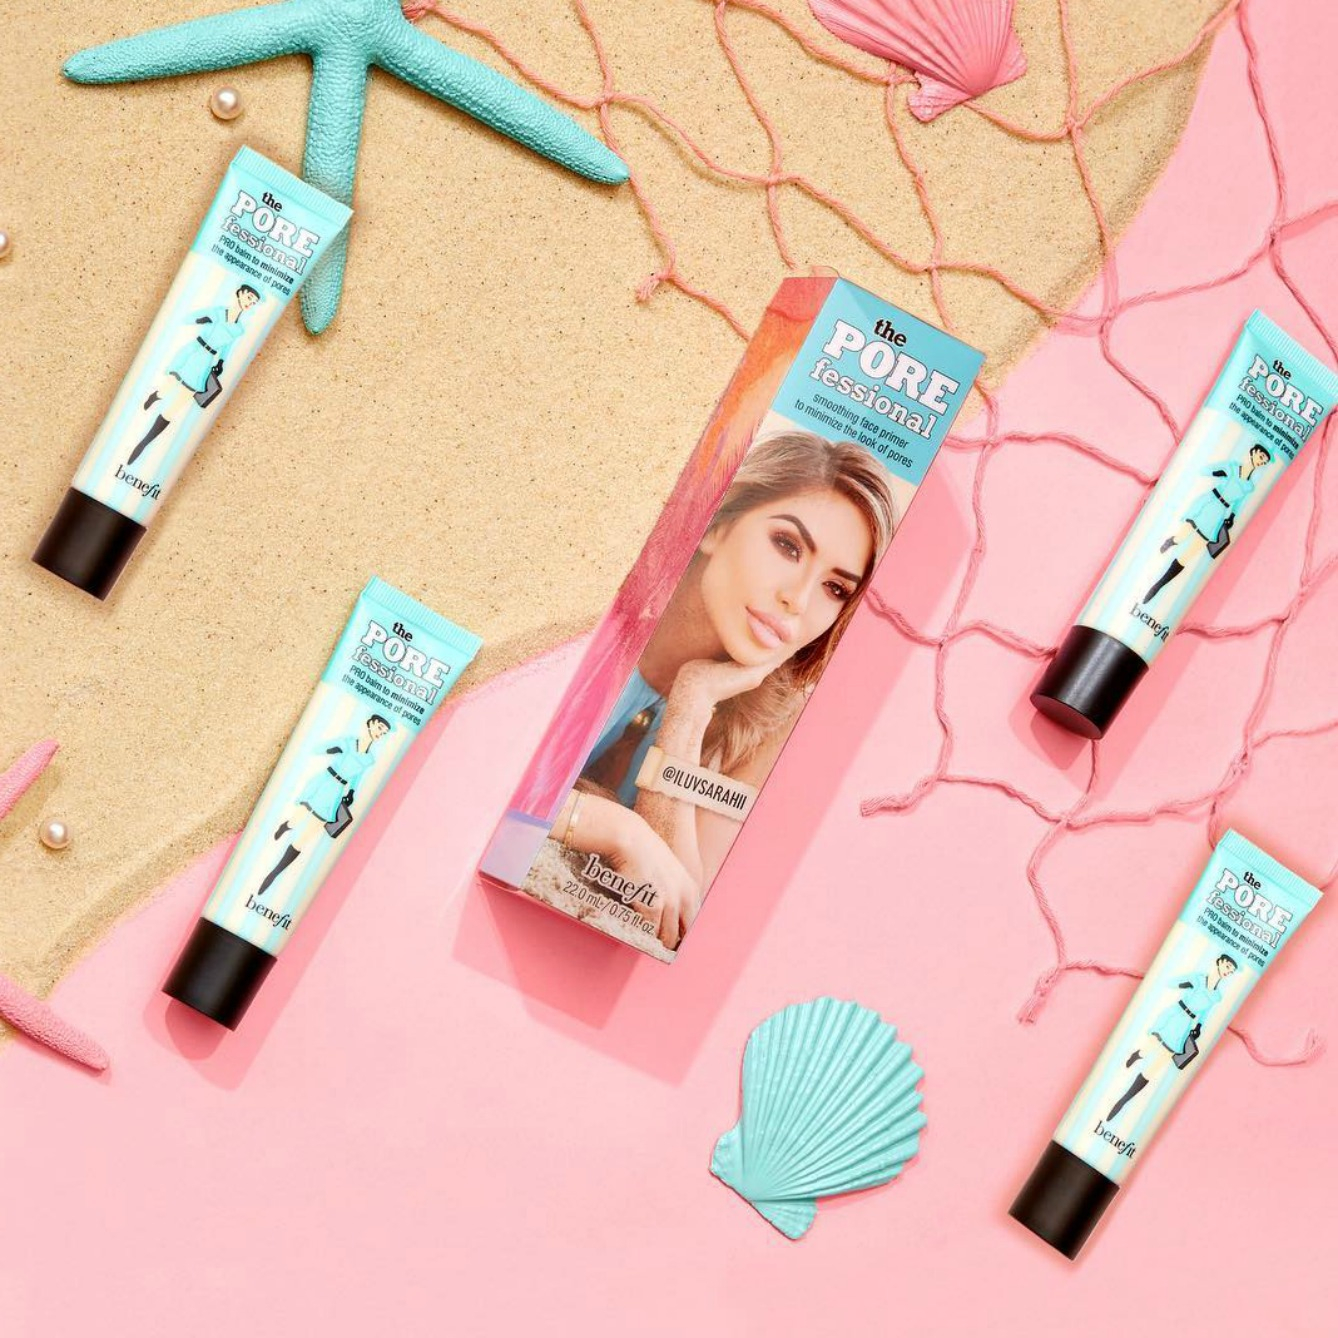 Benefit Cosmetics Launches a Desert-Island Kit